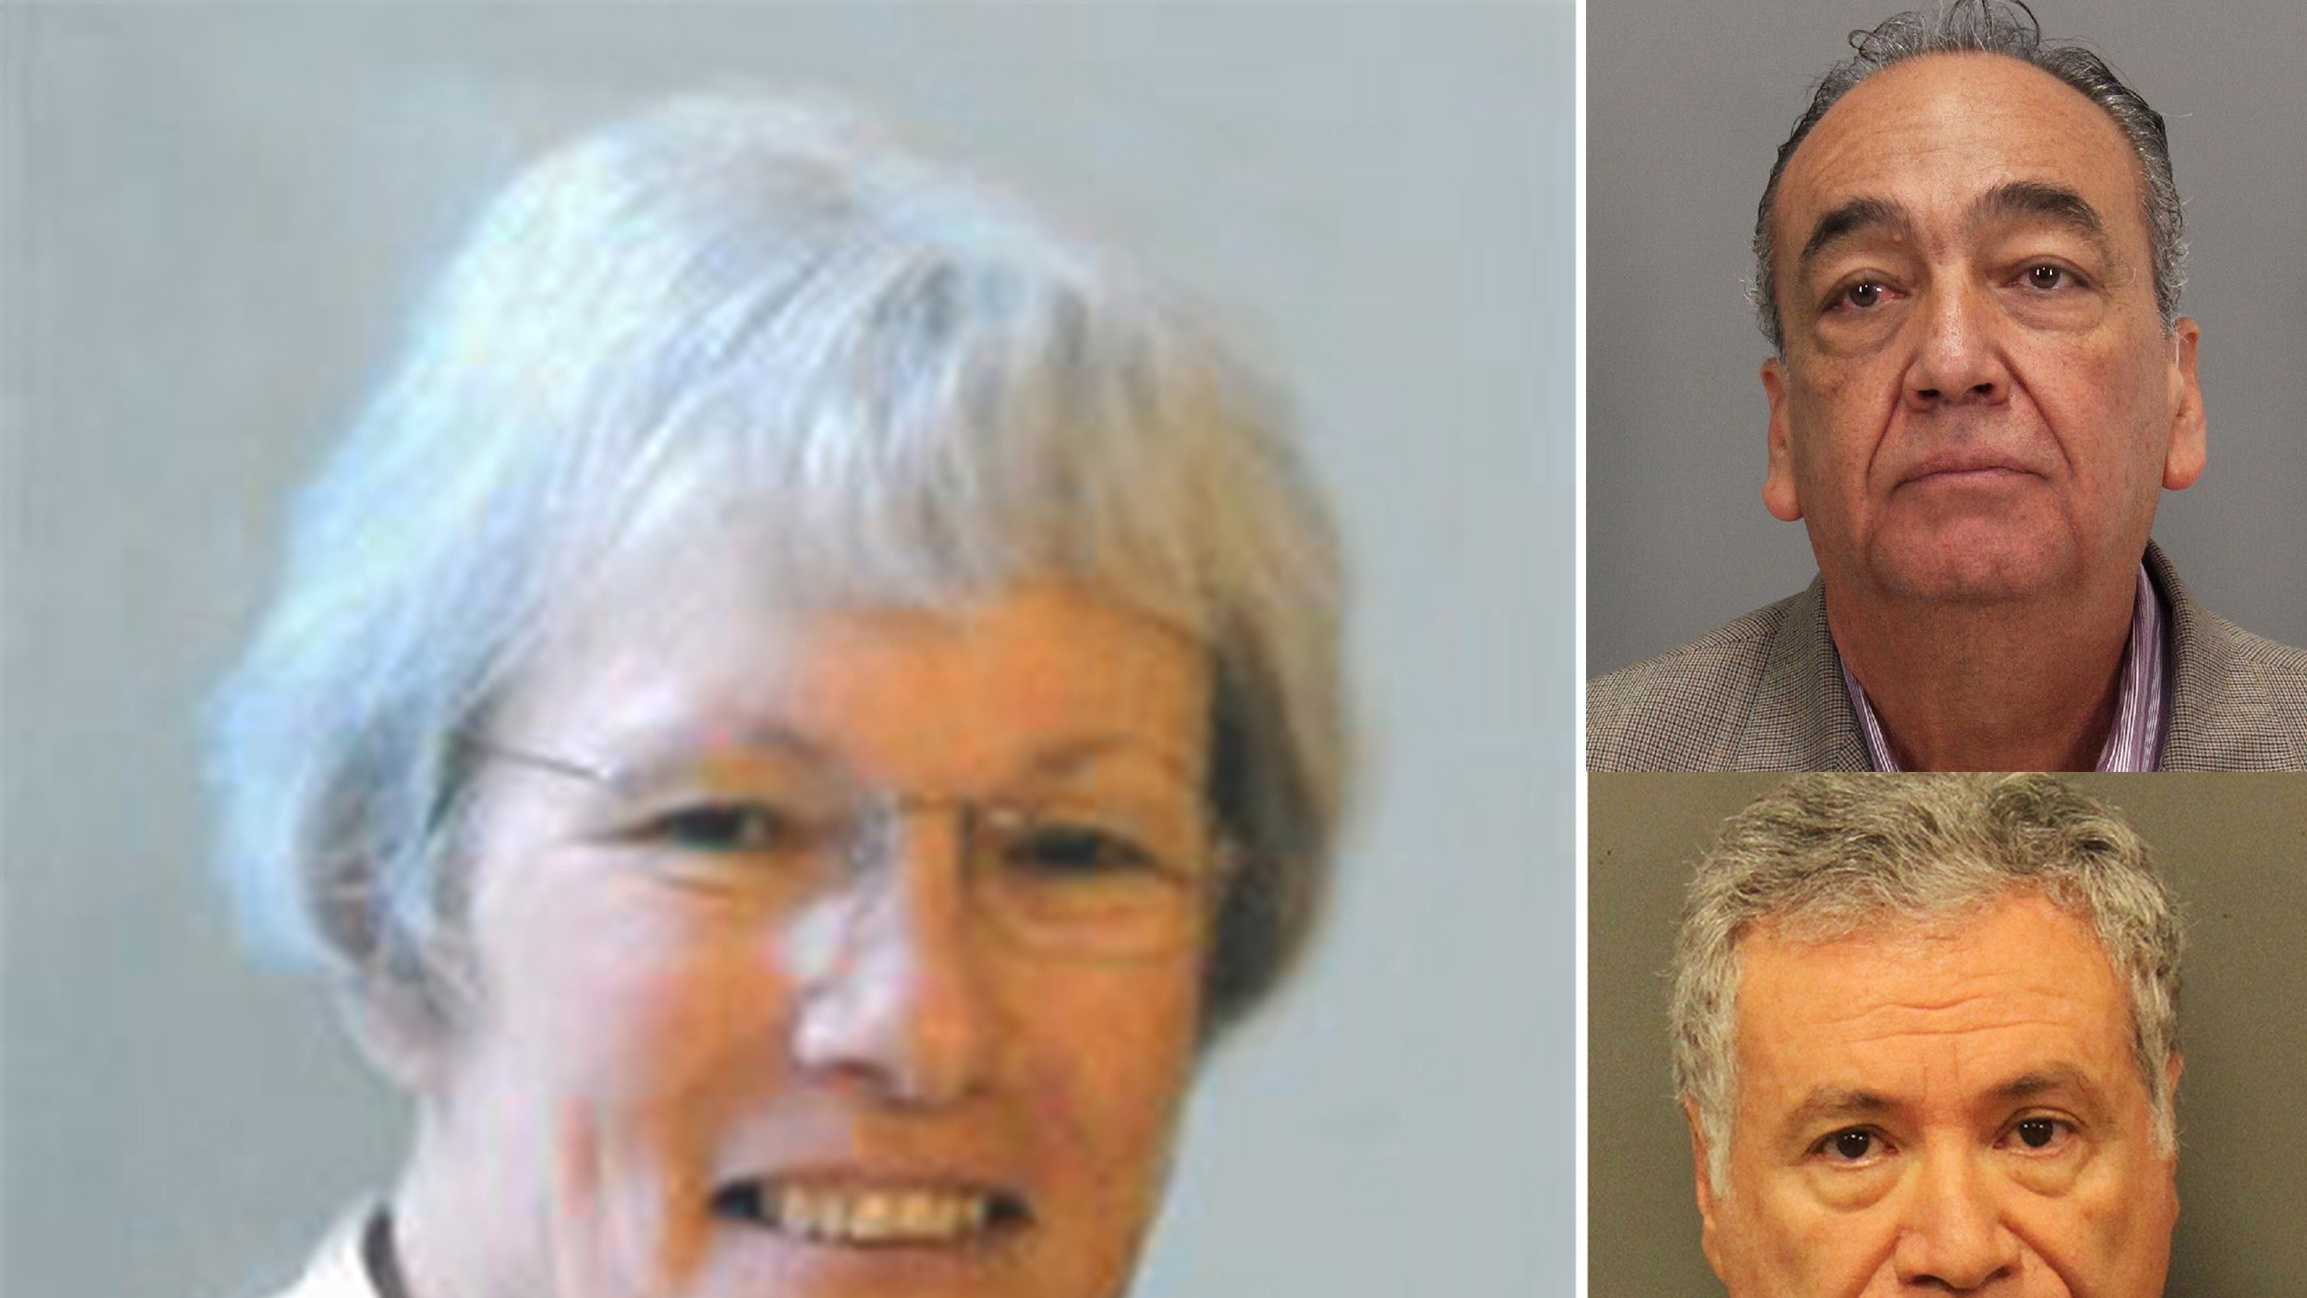 Doris Knapp, left, David Galvez, top right, and German Baldeon, bottom right.